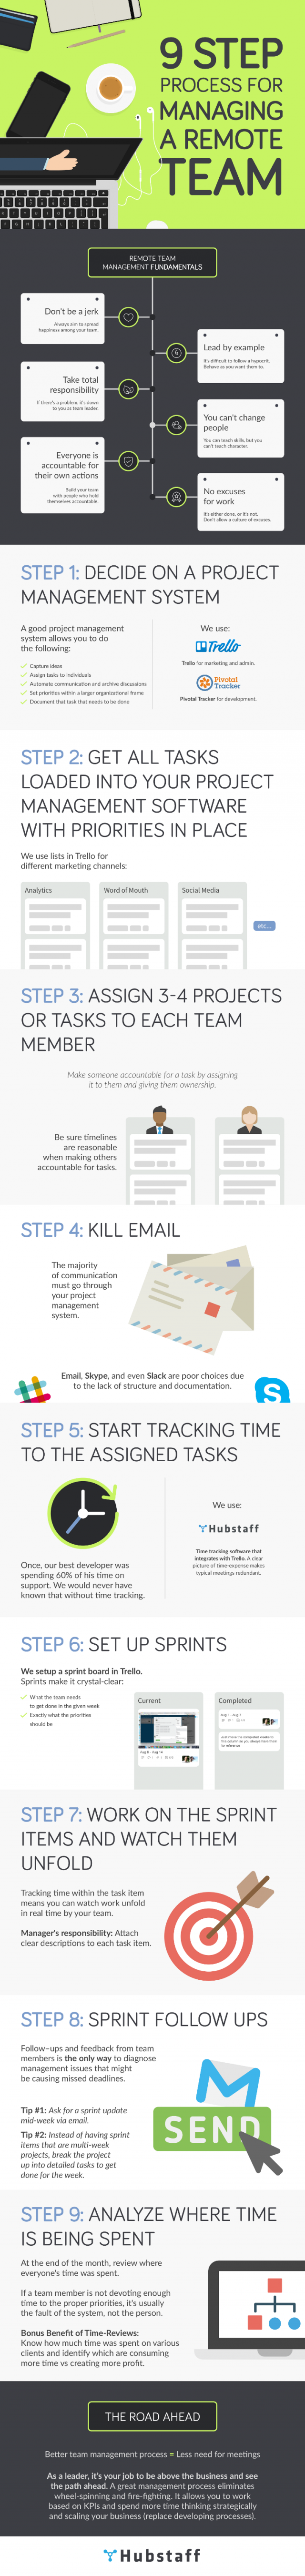 Managing Remote Workers Infographic